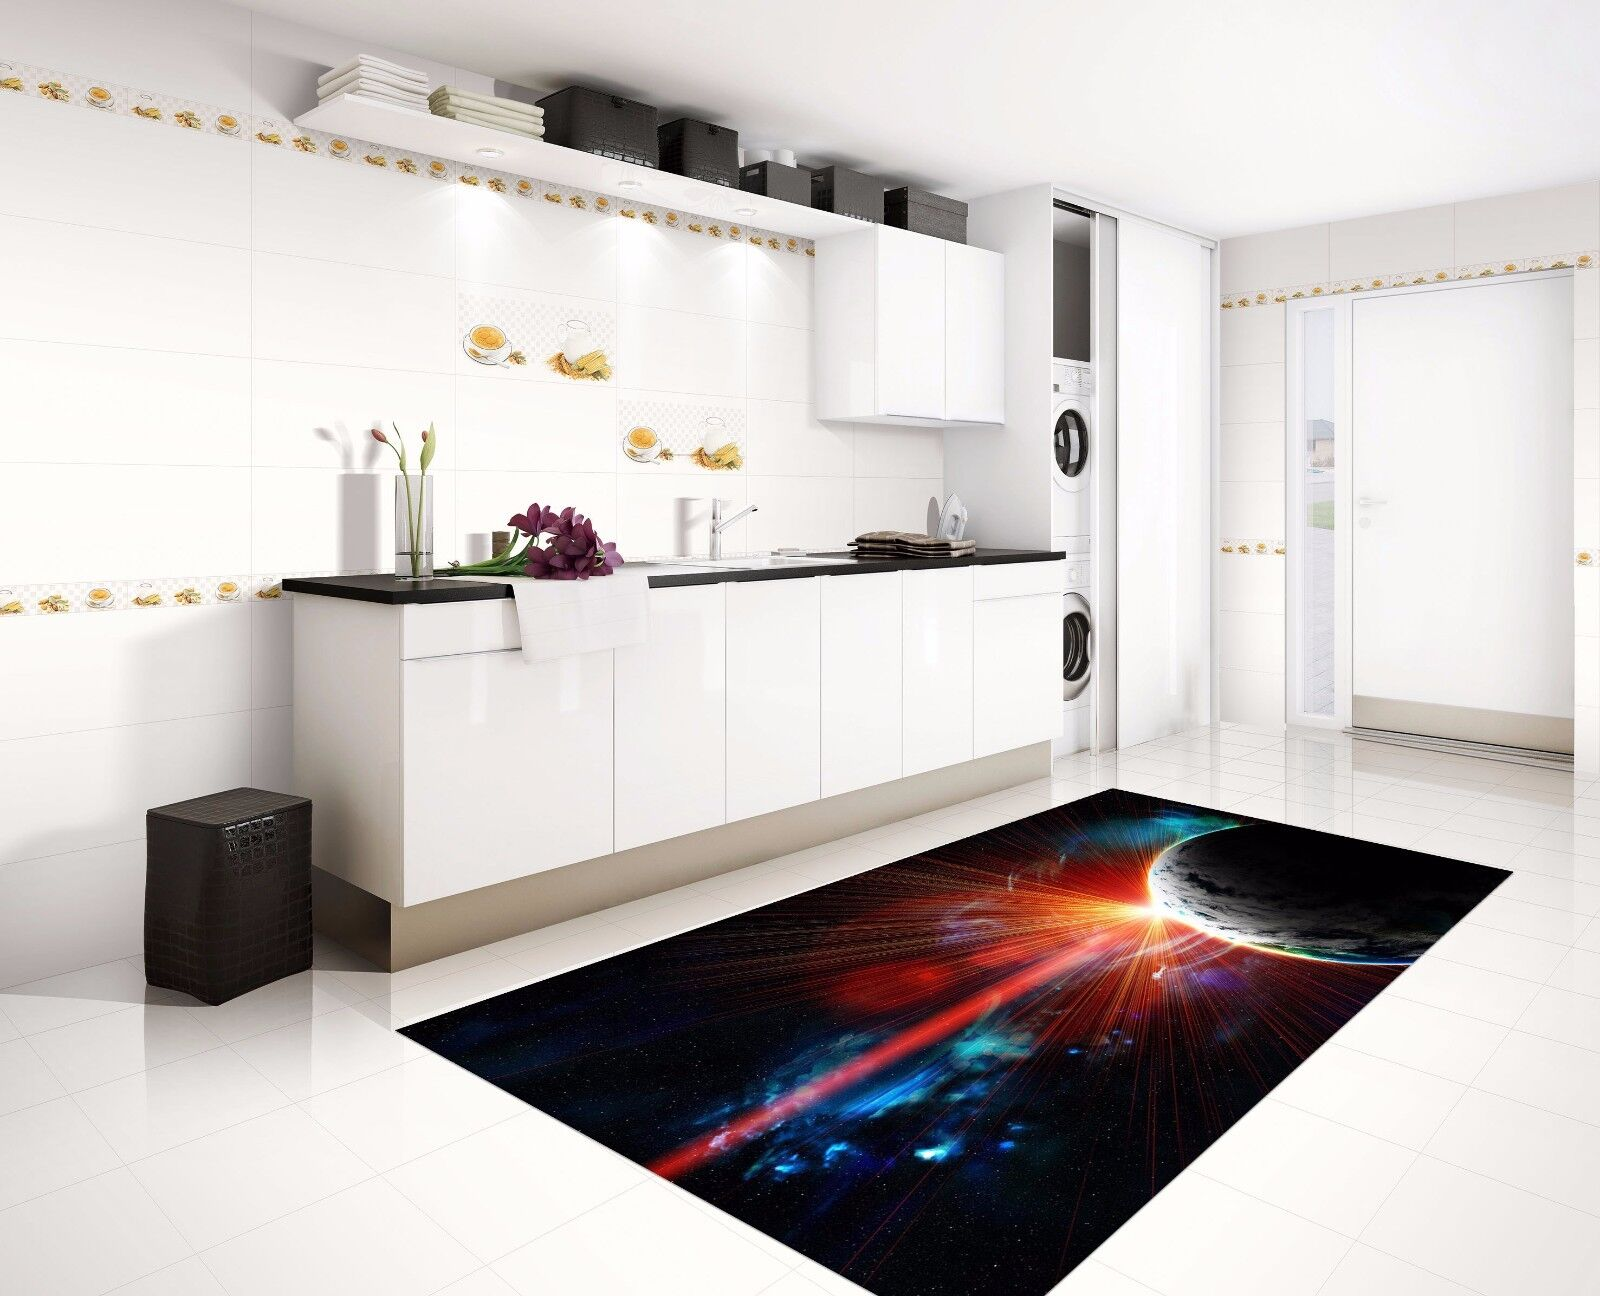 3D Sky Earth 782 Kitchen Mat Floor Murals Wall Print Wall AJ WALLPAPER UK Kyra